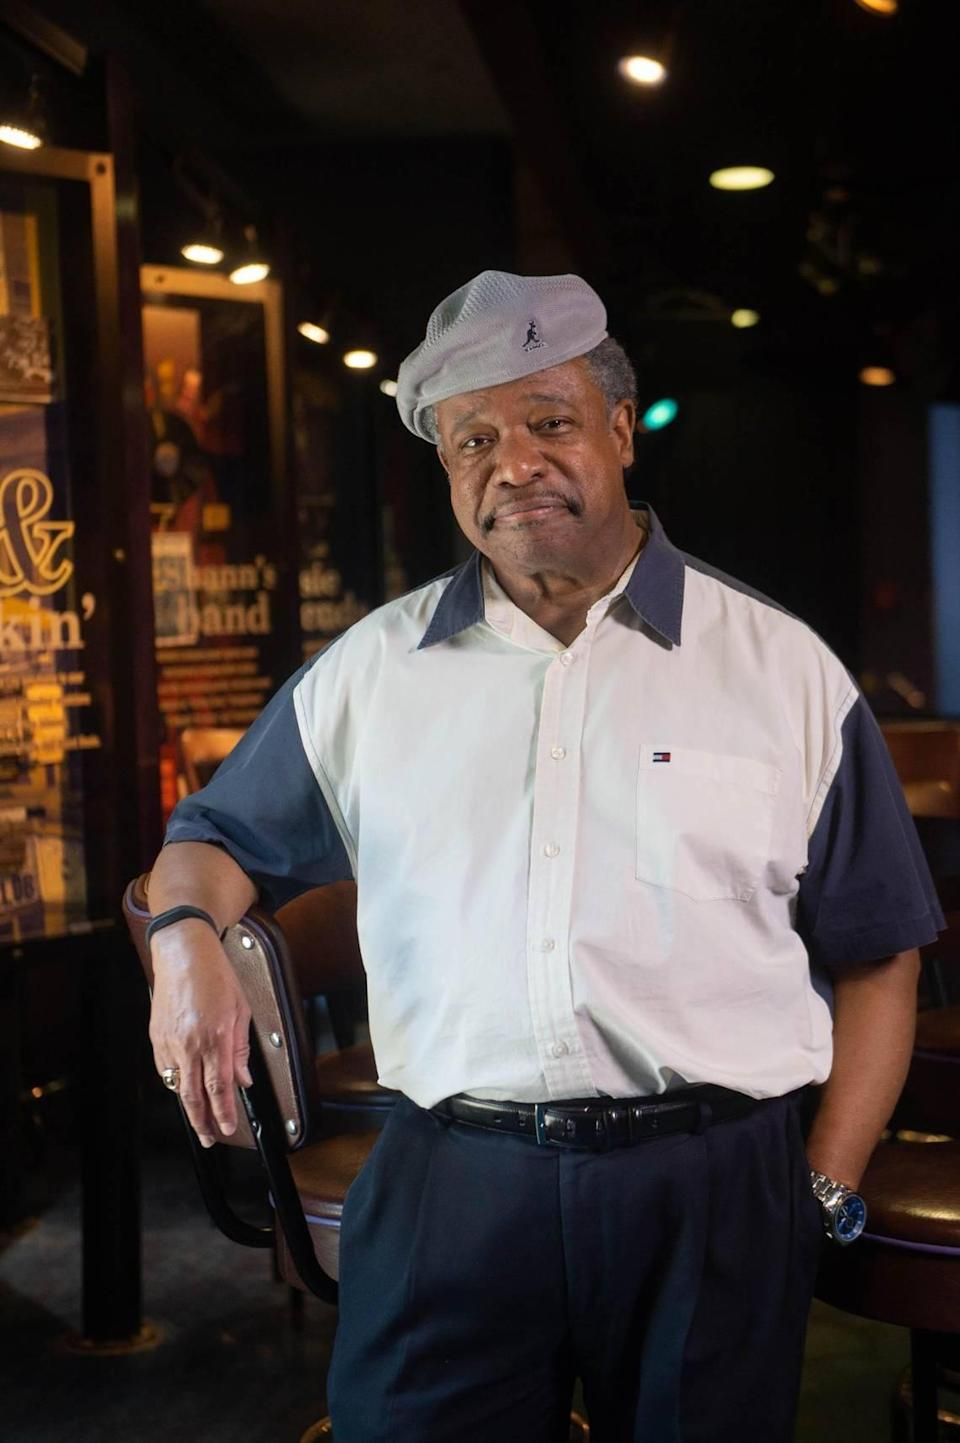 Stanley Banks, photographed at the American Jazz Museum. Banks grew up near 18th and Vine, and jazz informs much of his work.